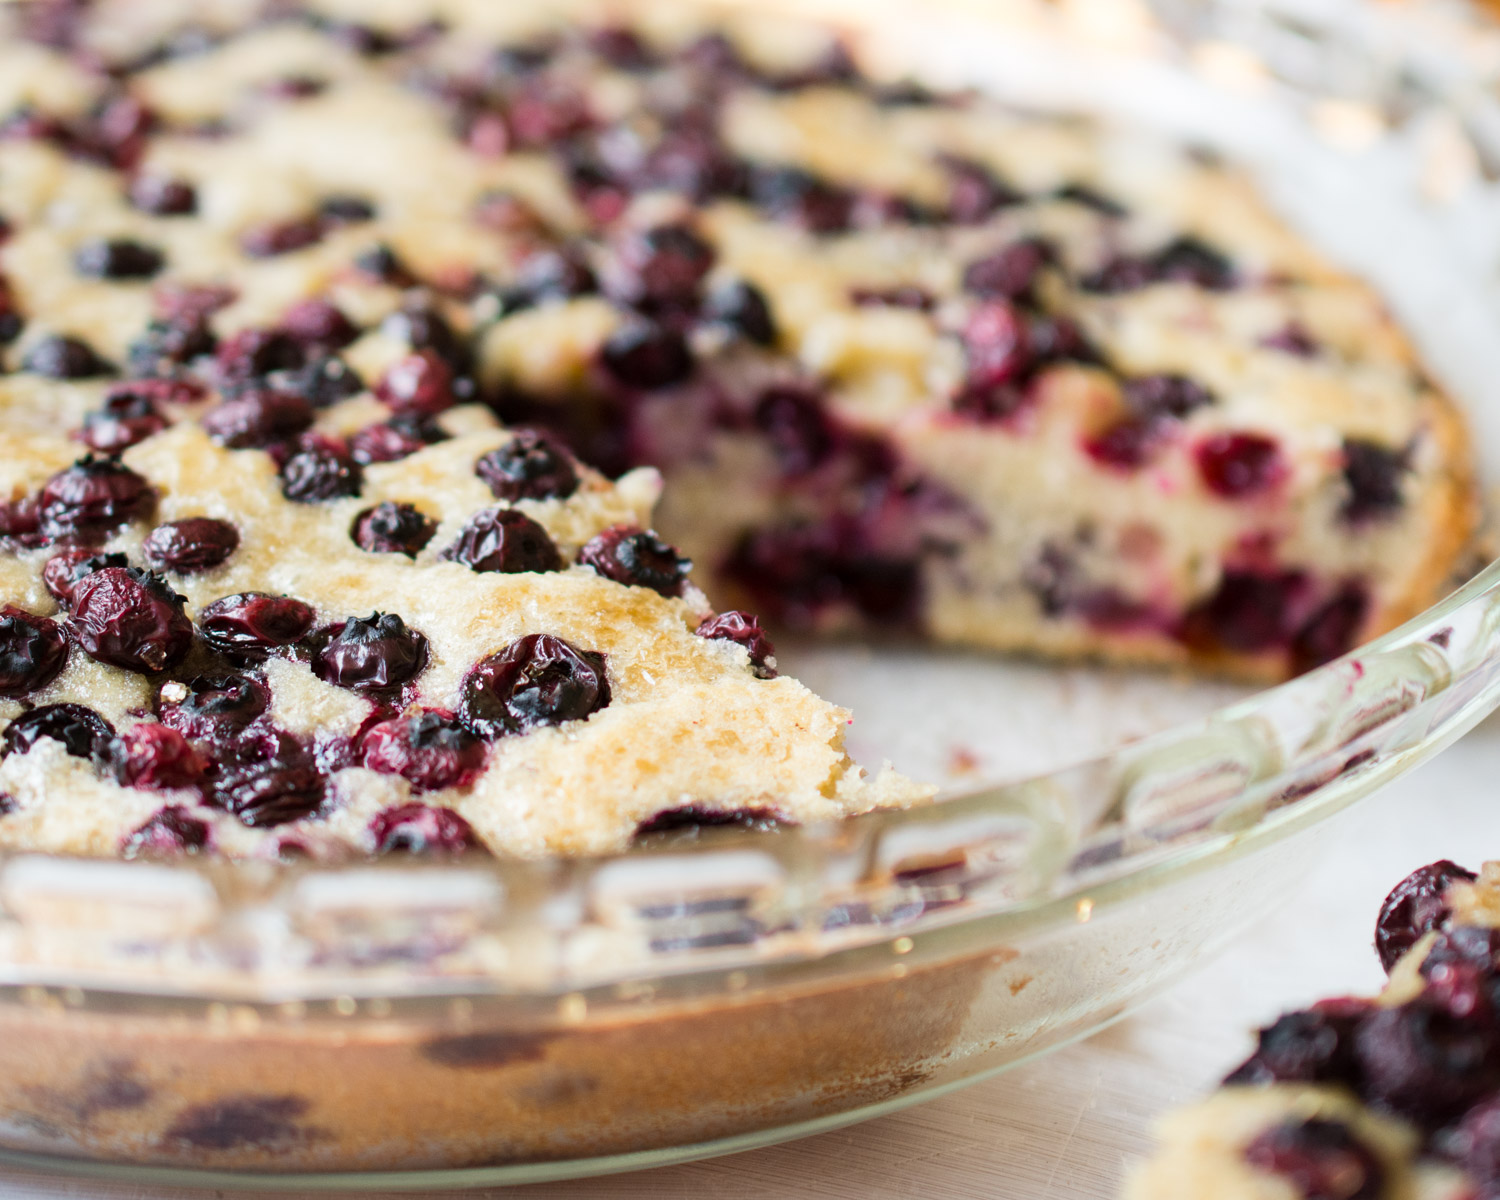 No_Crust_Blueberry_Pie-9.jpg